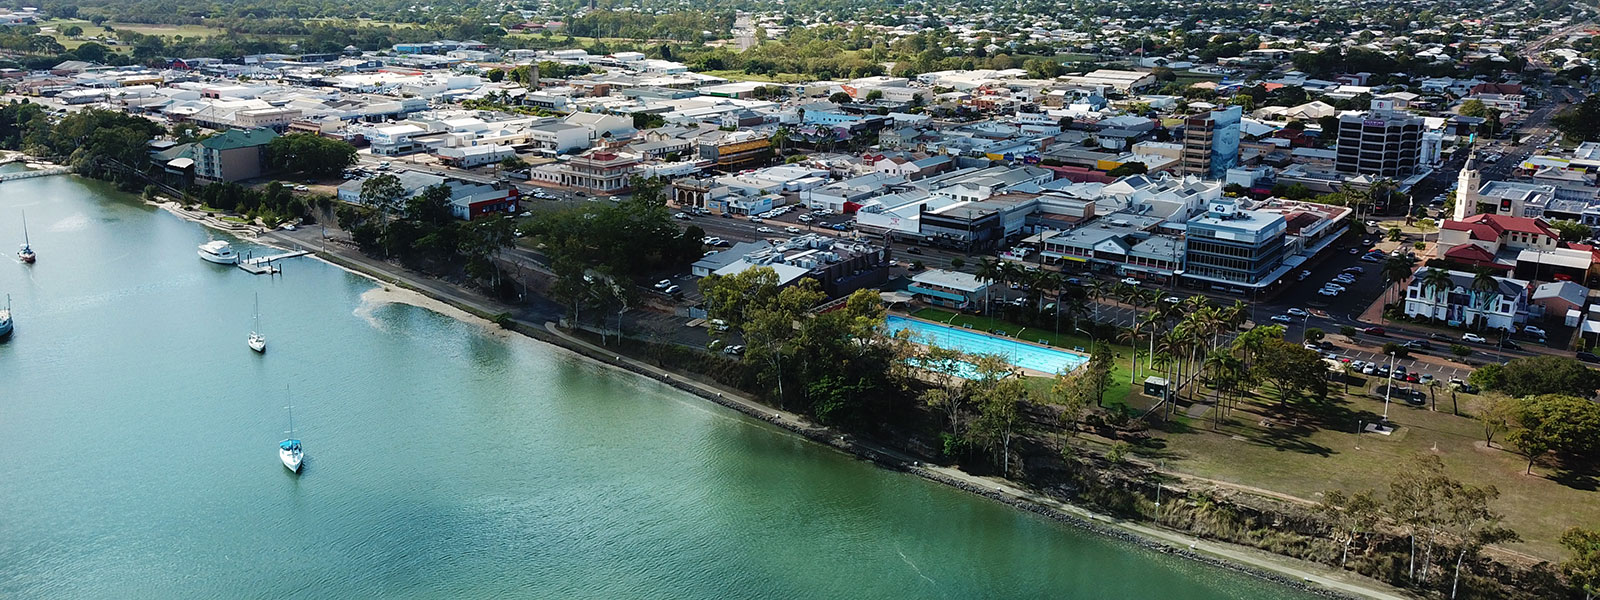 Invest in bundaberg drone image of city